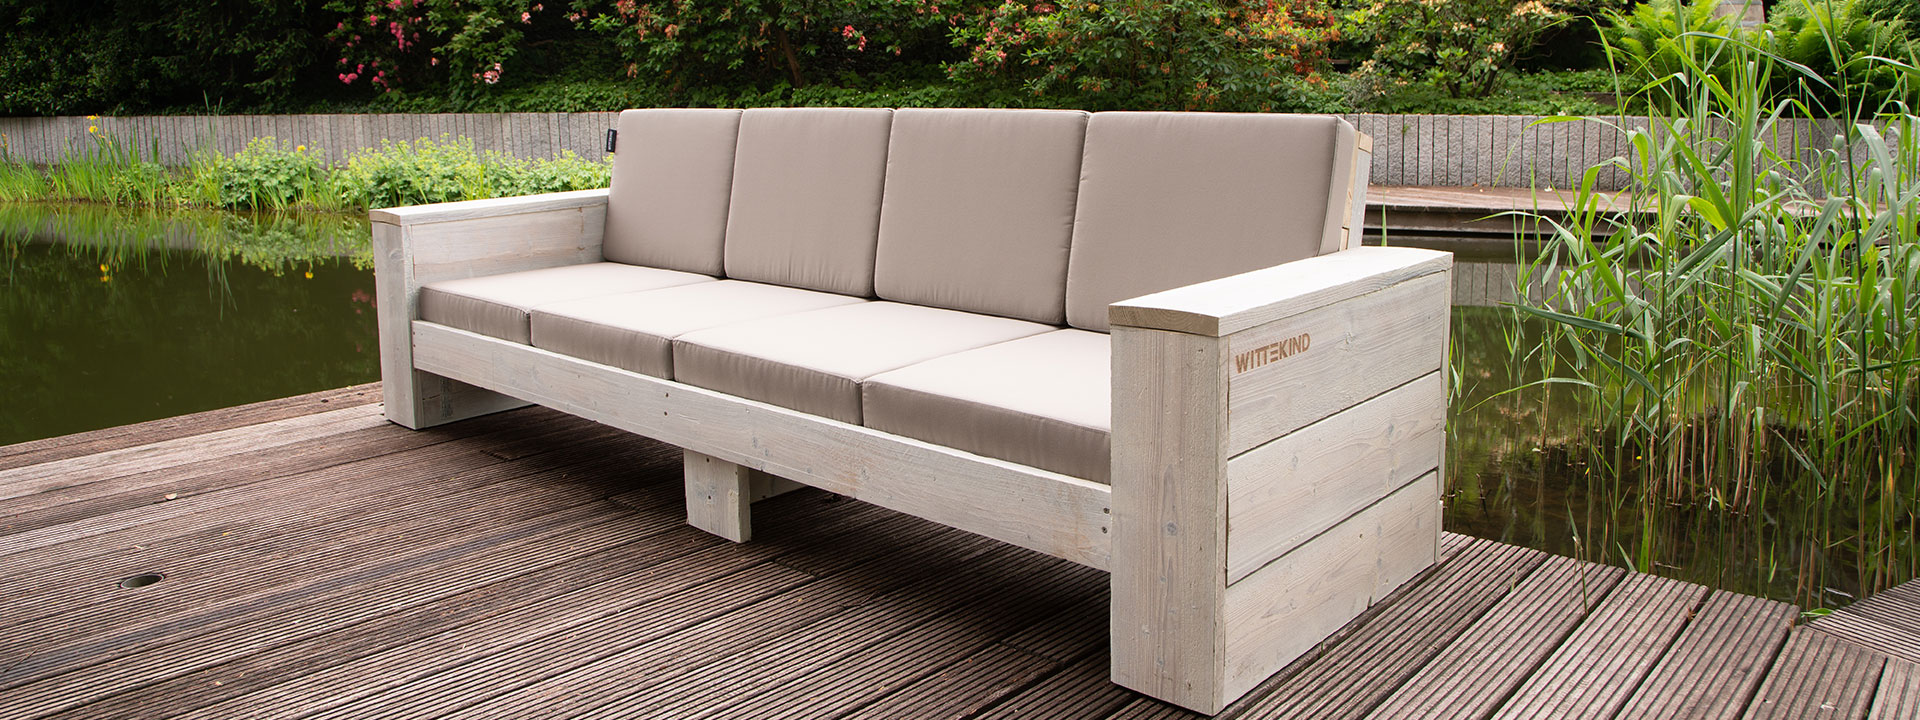 Awesome Lounge 4Er Sofa Pure Entspannung Wittekind Mobel Cjindustries Chair Design For Home Cjindustriesco